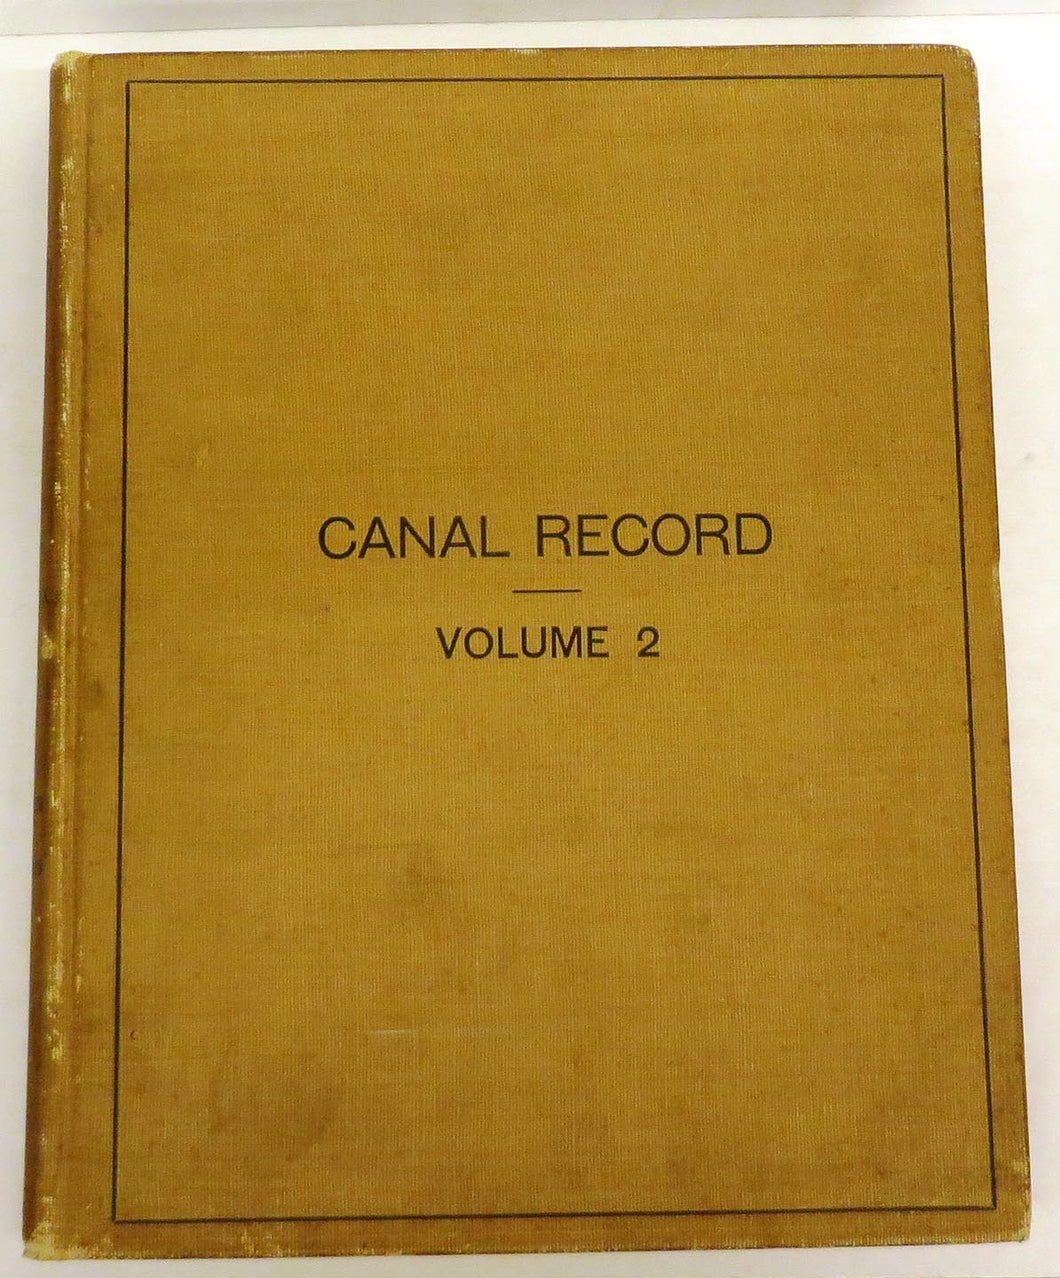 Canal Record September 2, 1908 - August 25, 1909. Volume II. With Index